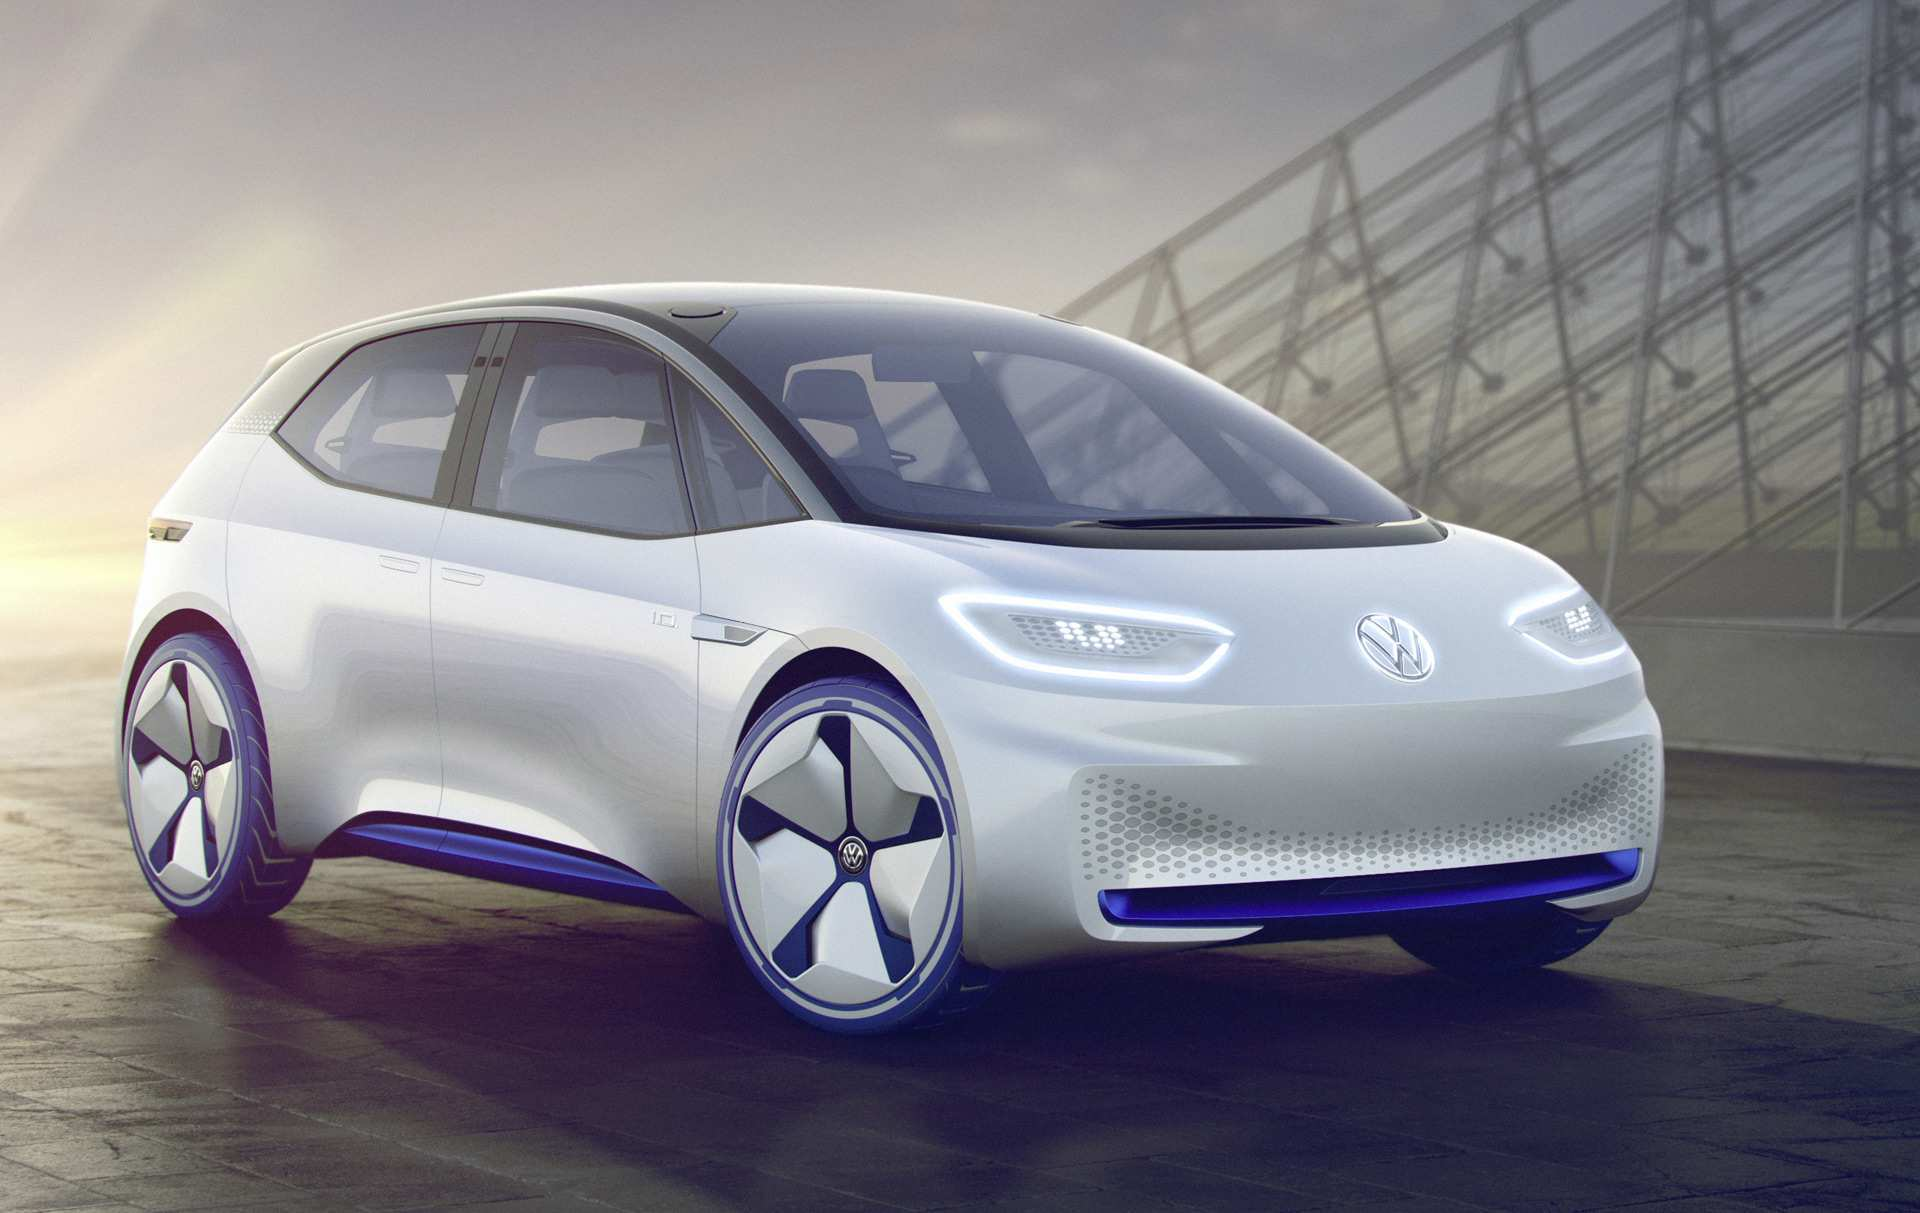 65 All New Vw 2020 Car Pictures